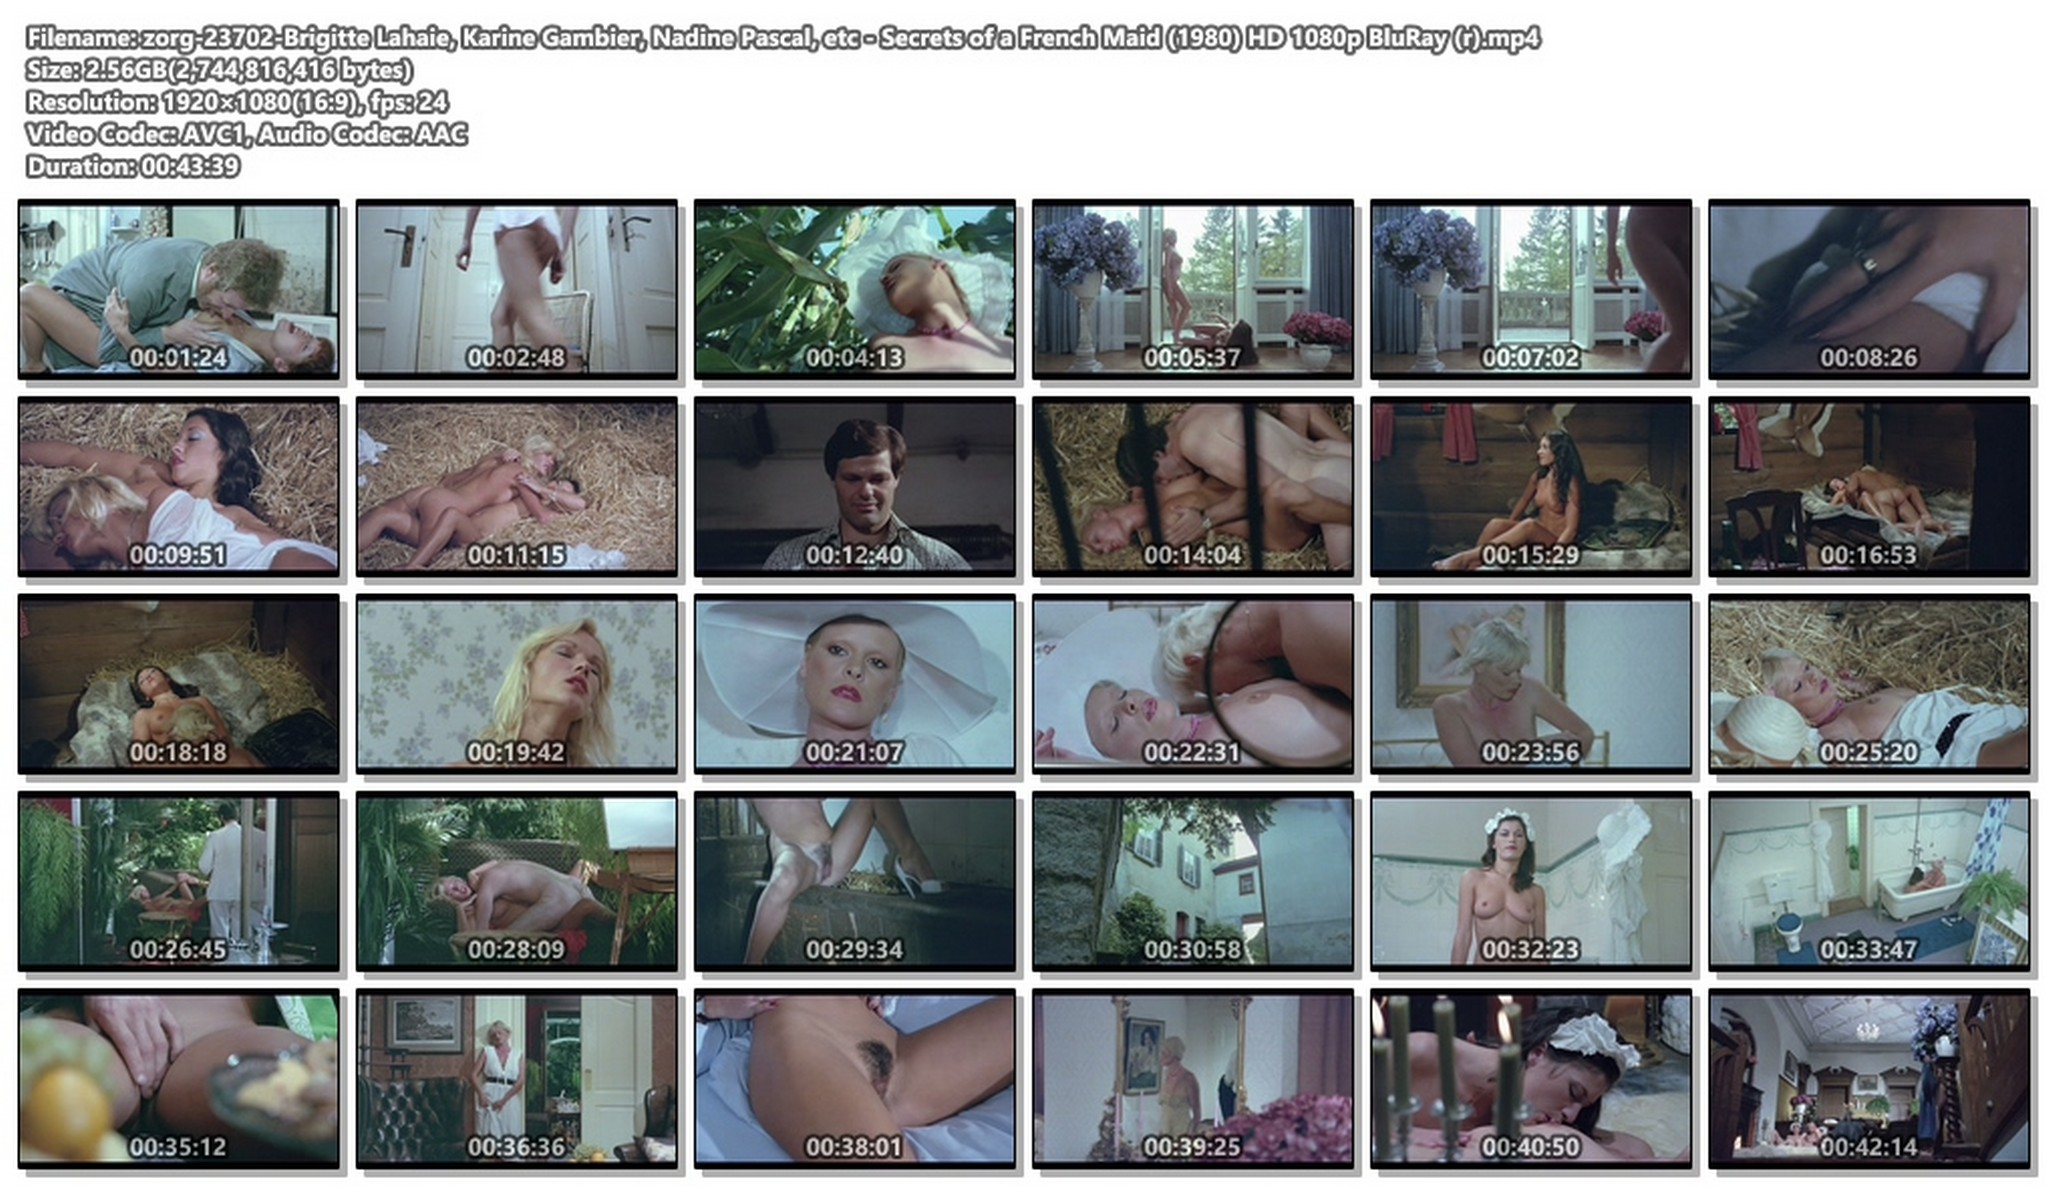 Brigitte Lahaie nude Karine Gambier, Nadine Pascal nude sex - Secrets of a French Maid (1980) HD 1080p BluRay (r) (1)